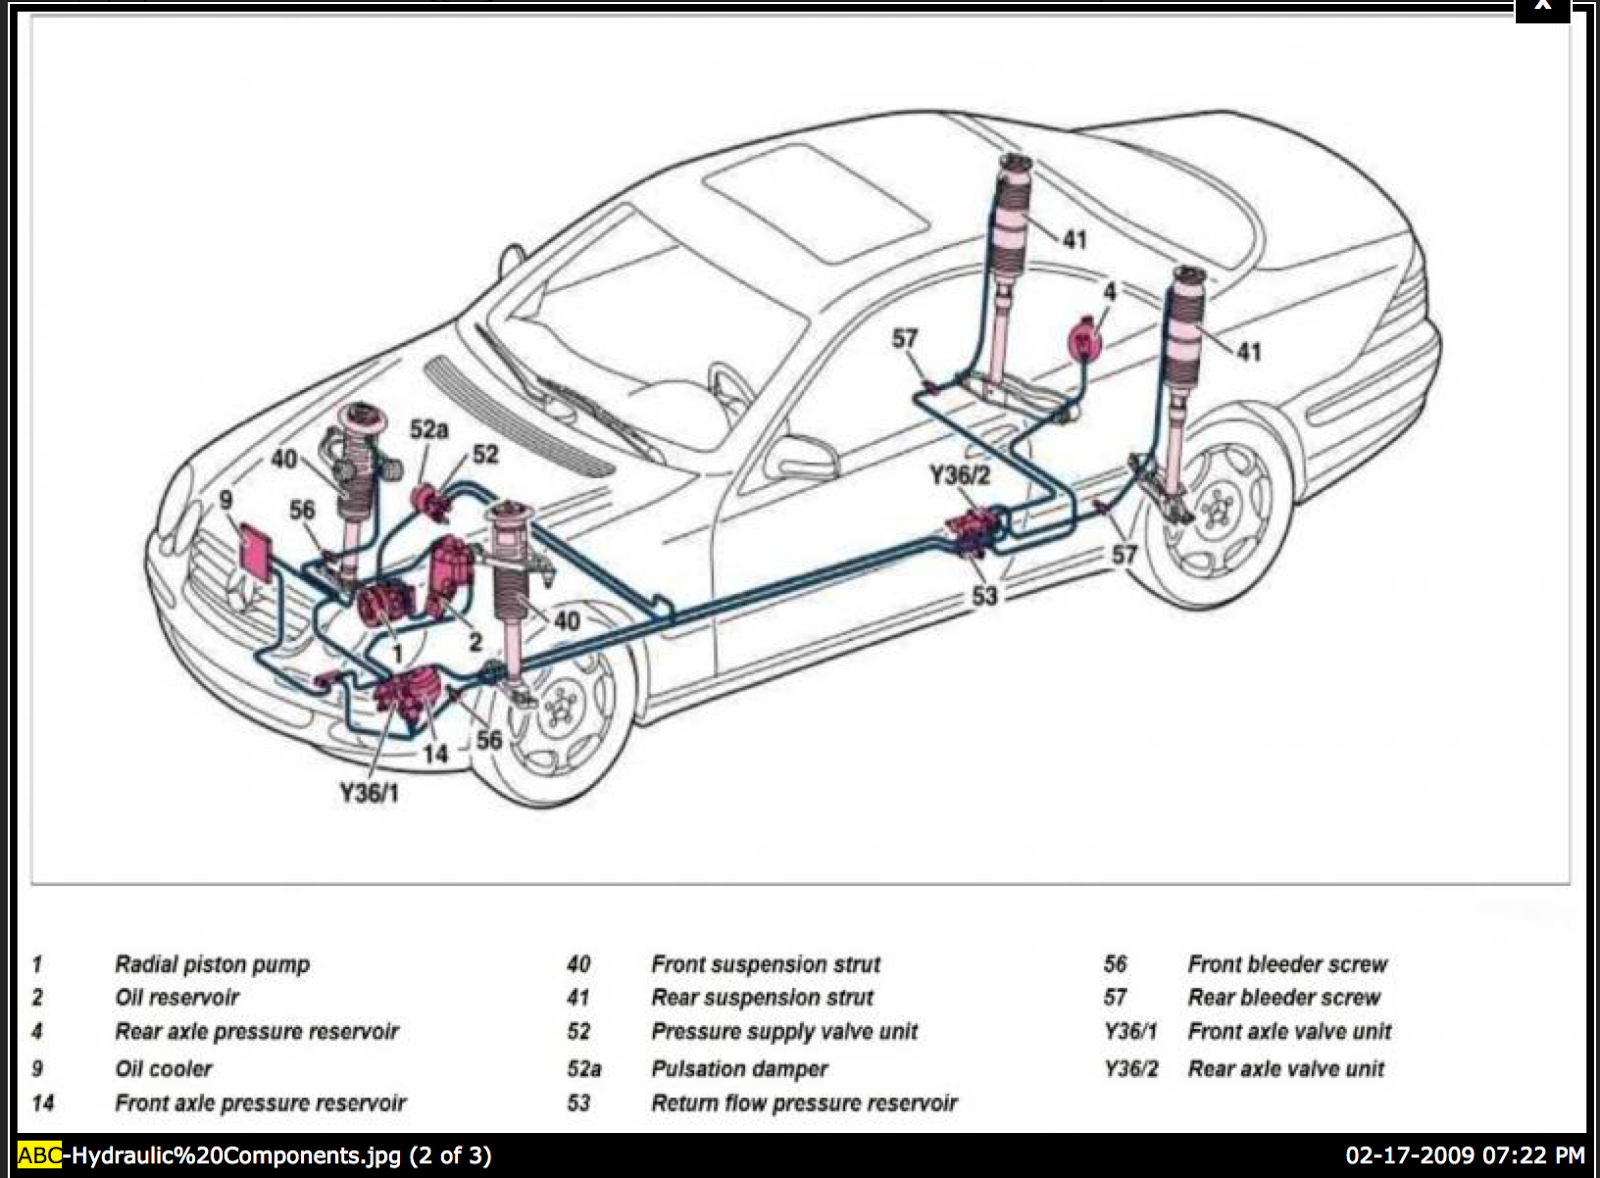 Battery Mercedes Cl500 Fuse Box Wiring Diagram Will Be A Thing Electrical For W219 Rear Panelwiringdiagramfusegif S500 Circuit Maker 1995 Cl600